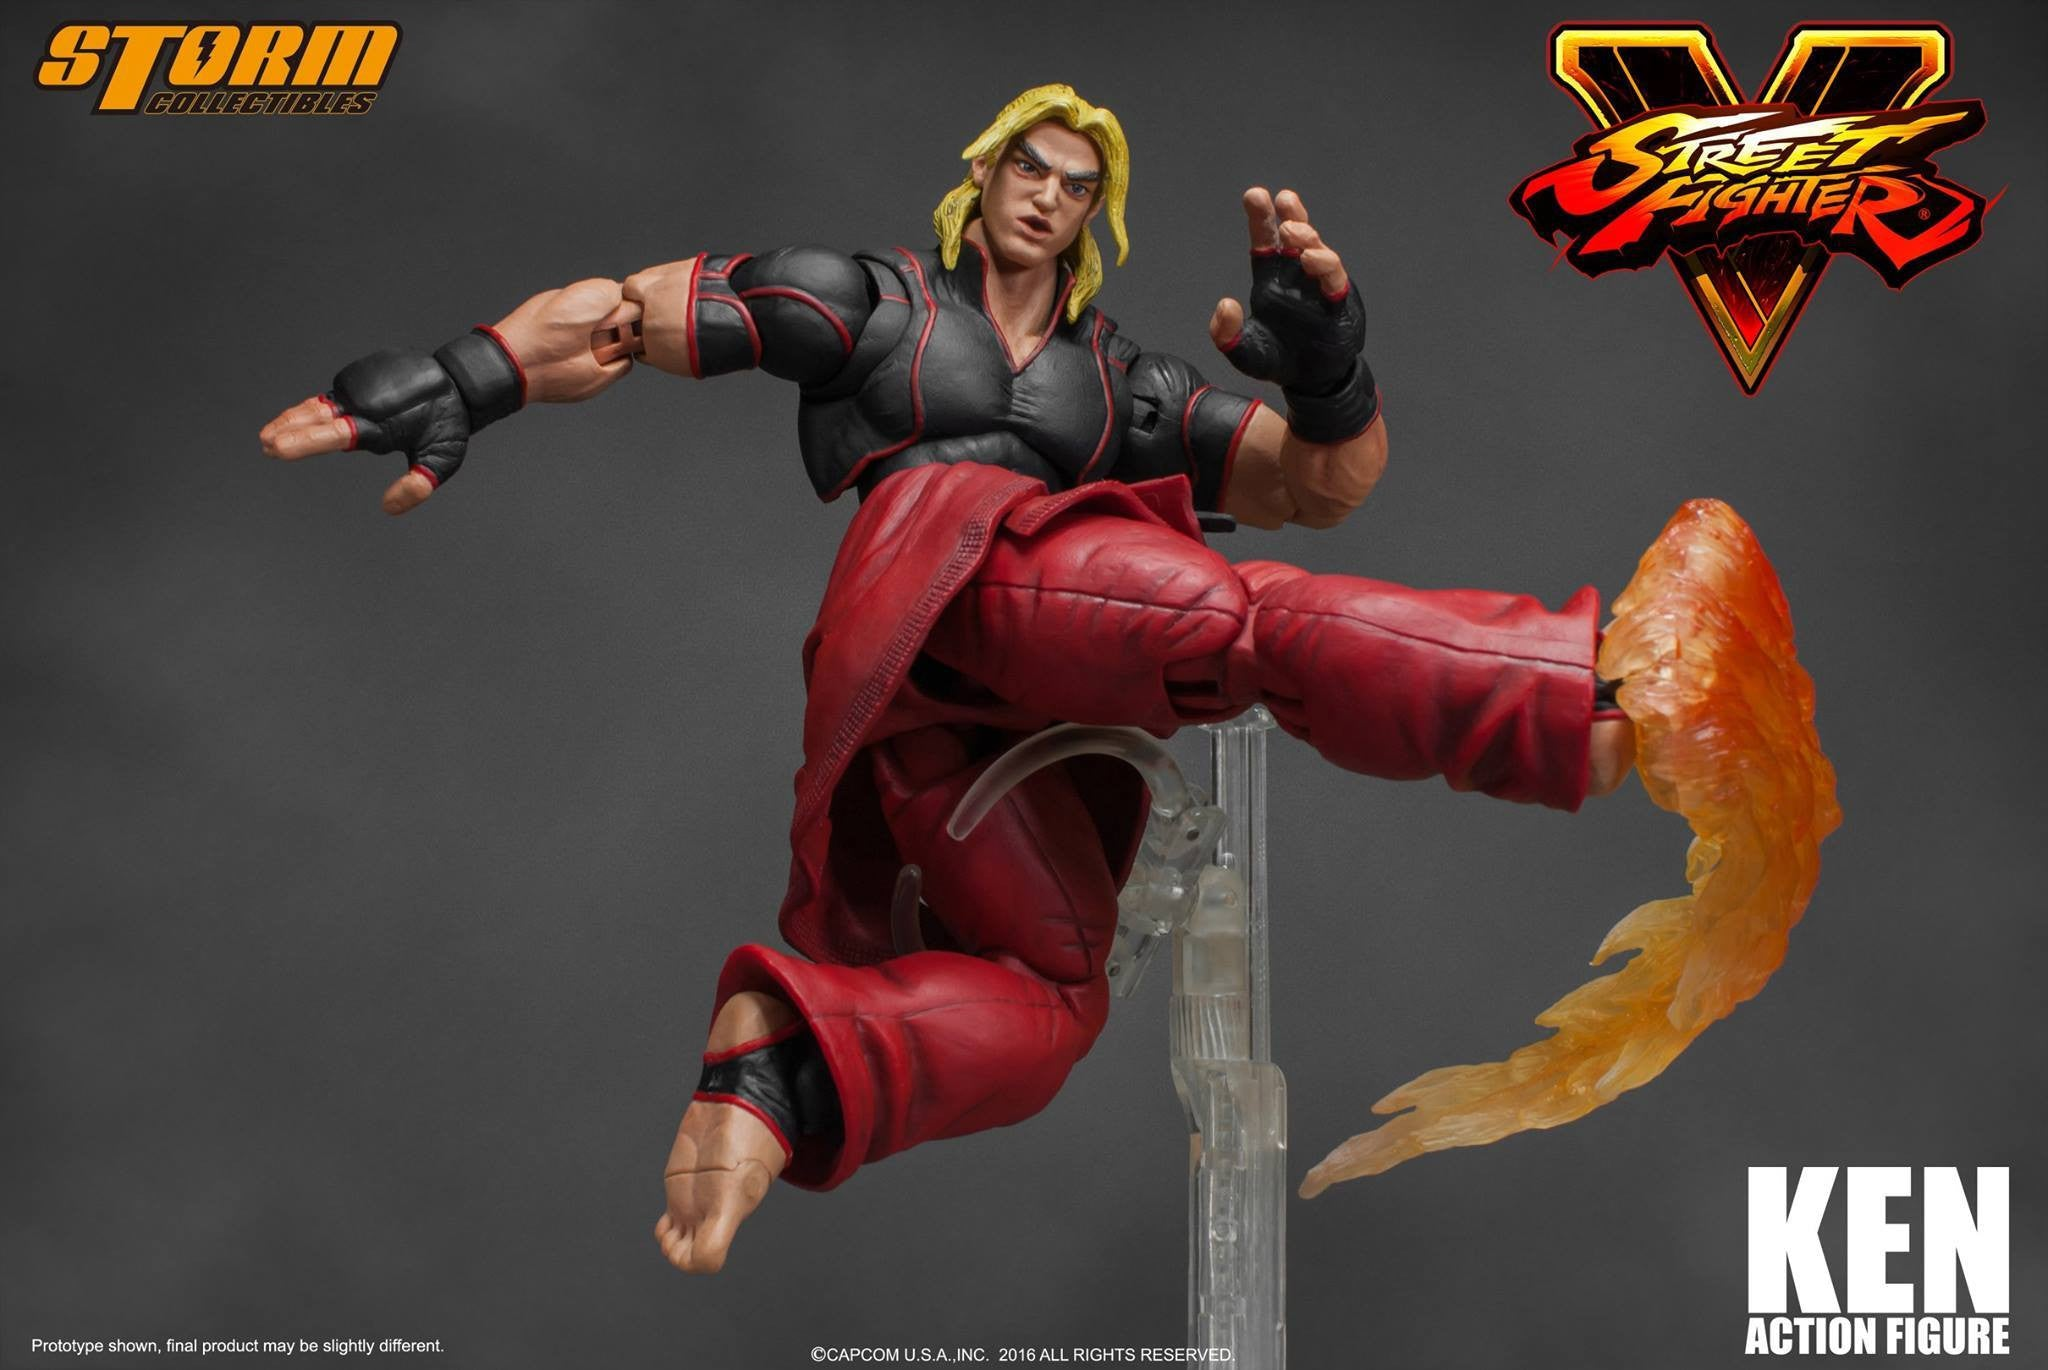 Storm Collectibles - 1:12 Scale Action Figure - Street Fighter V - Ken - Marvelous Toys - 2